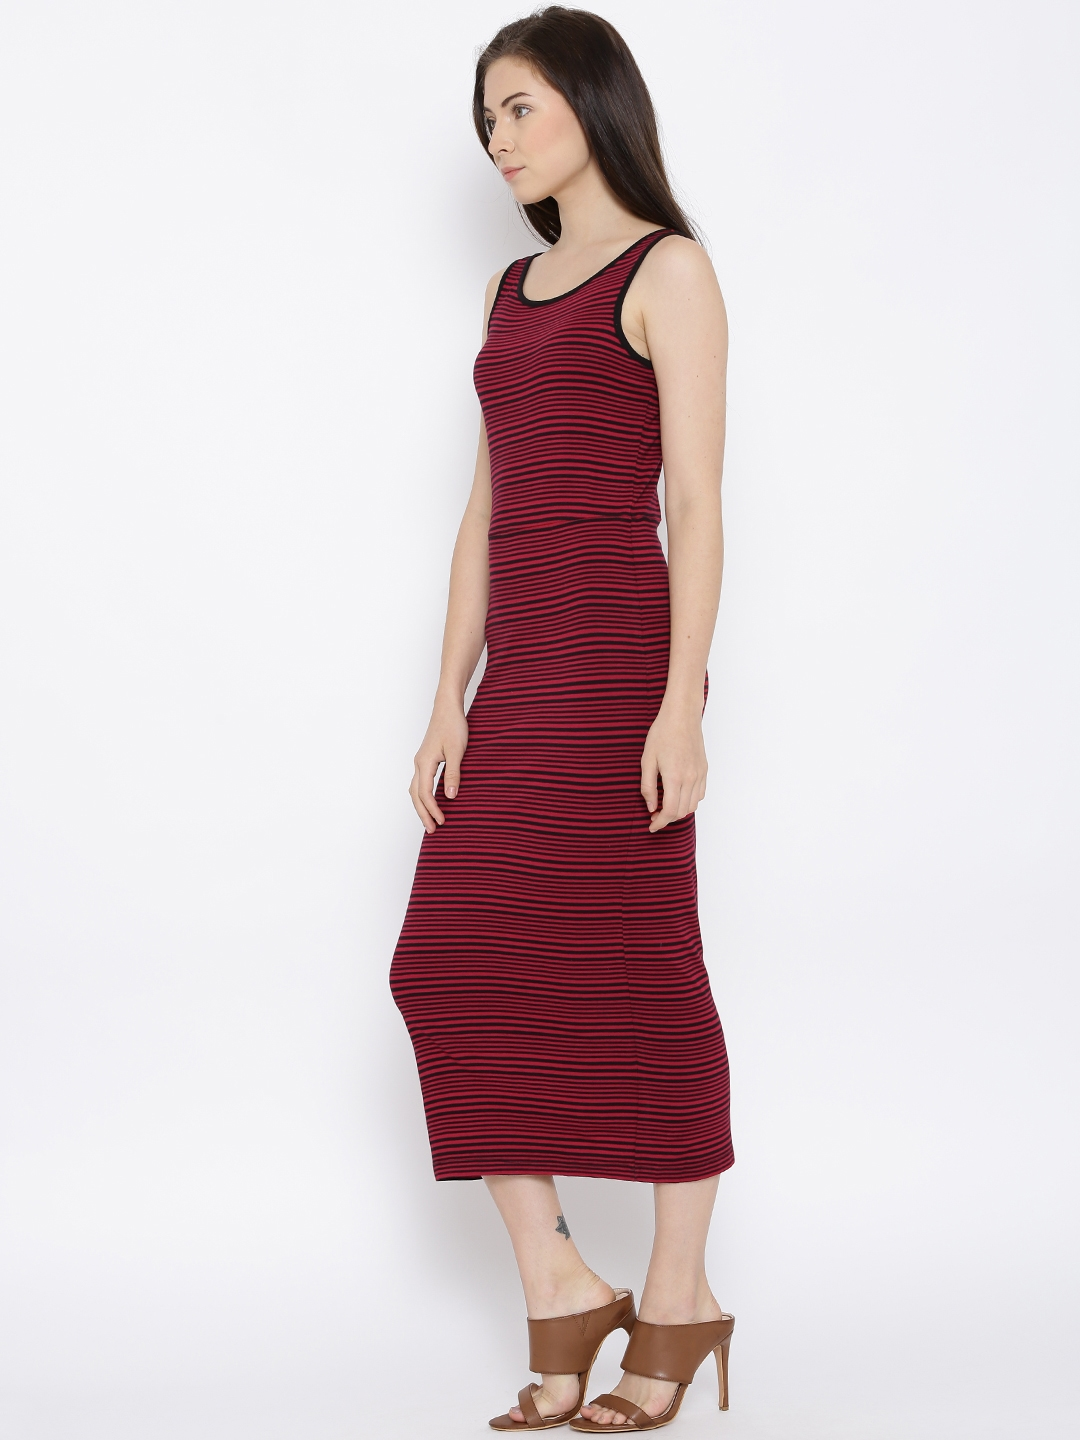 e824c0d88e0 Red And Black Striped Dress Outfit - Gomes Weine AG